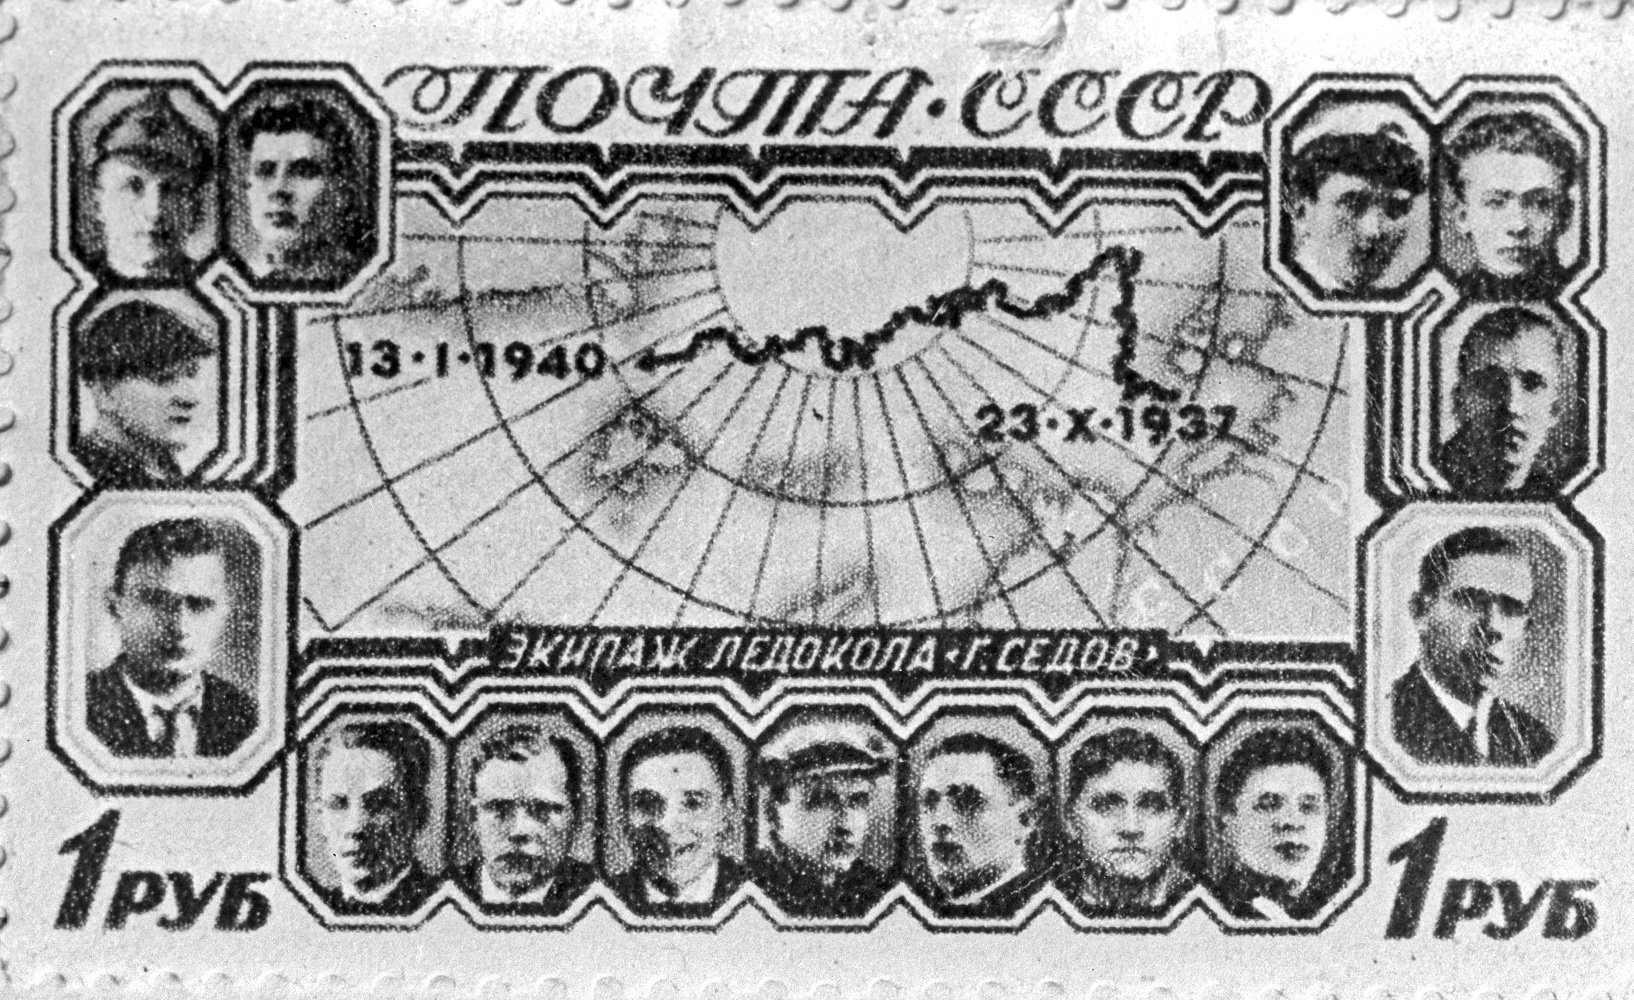 A Soviet 1940 postage stamp with the crew members of the Georgy Sedov icebreaker. A reproduction